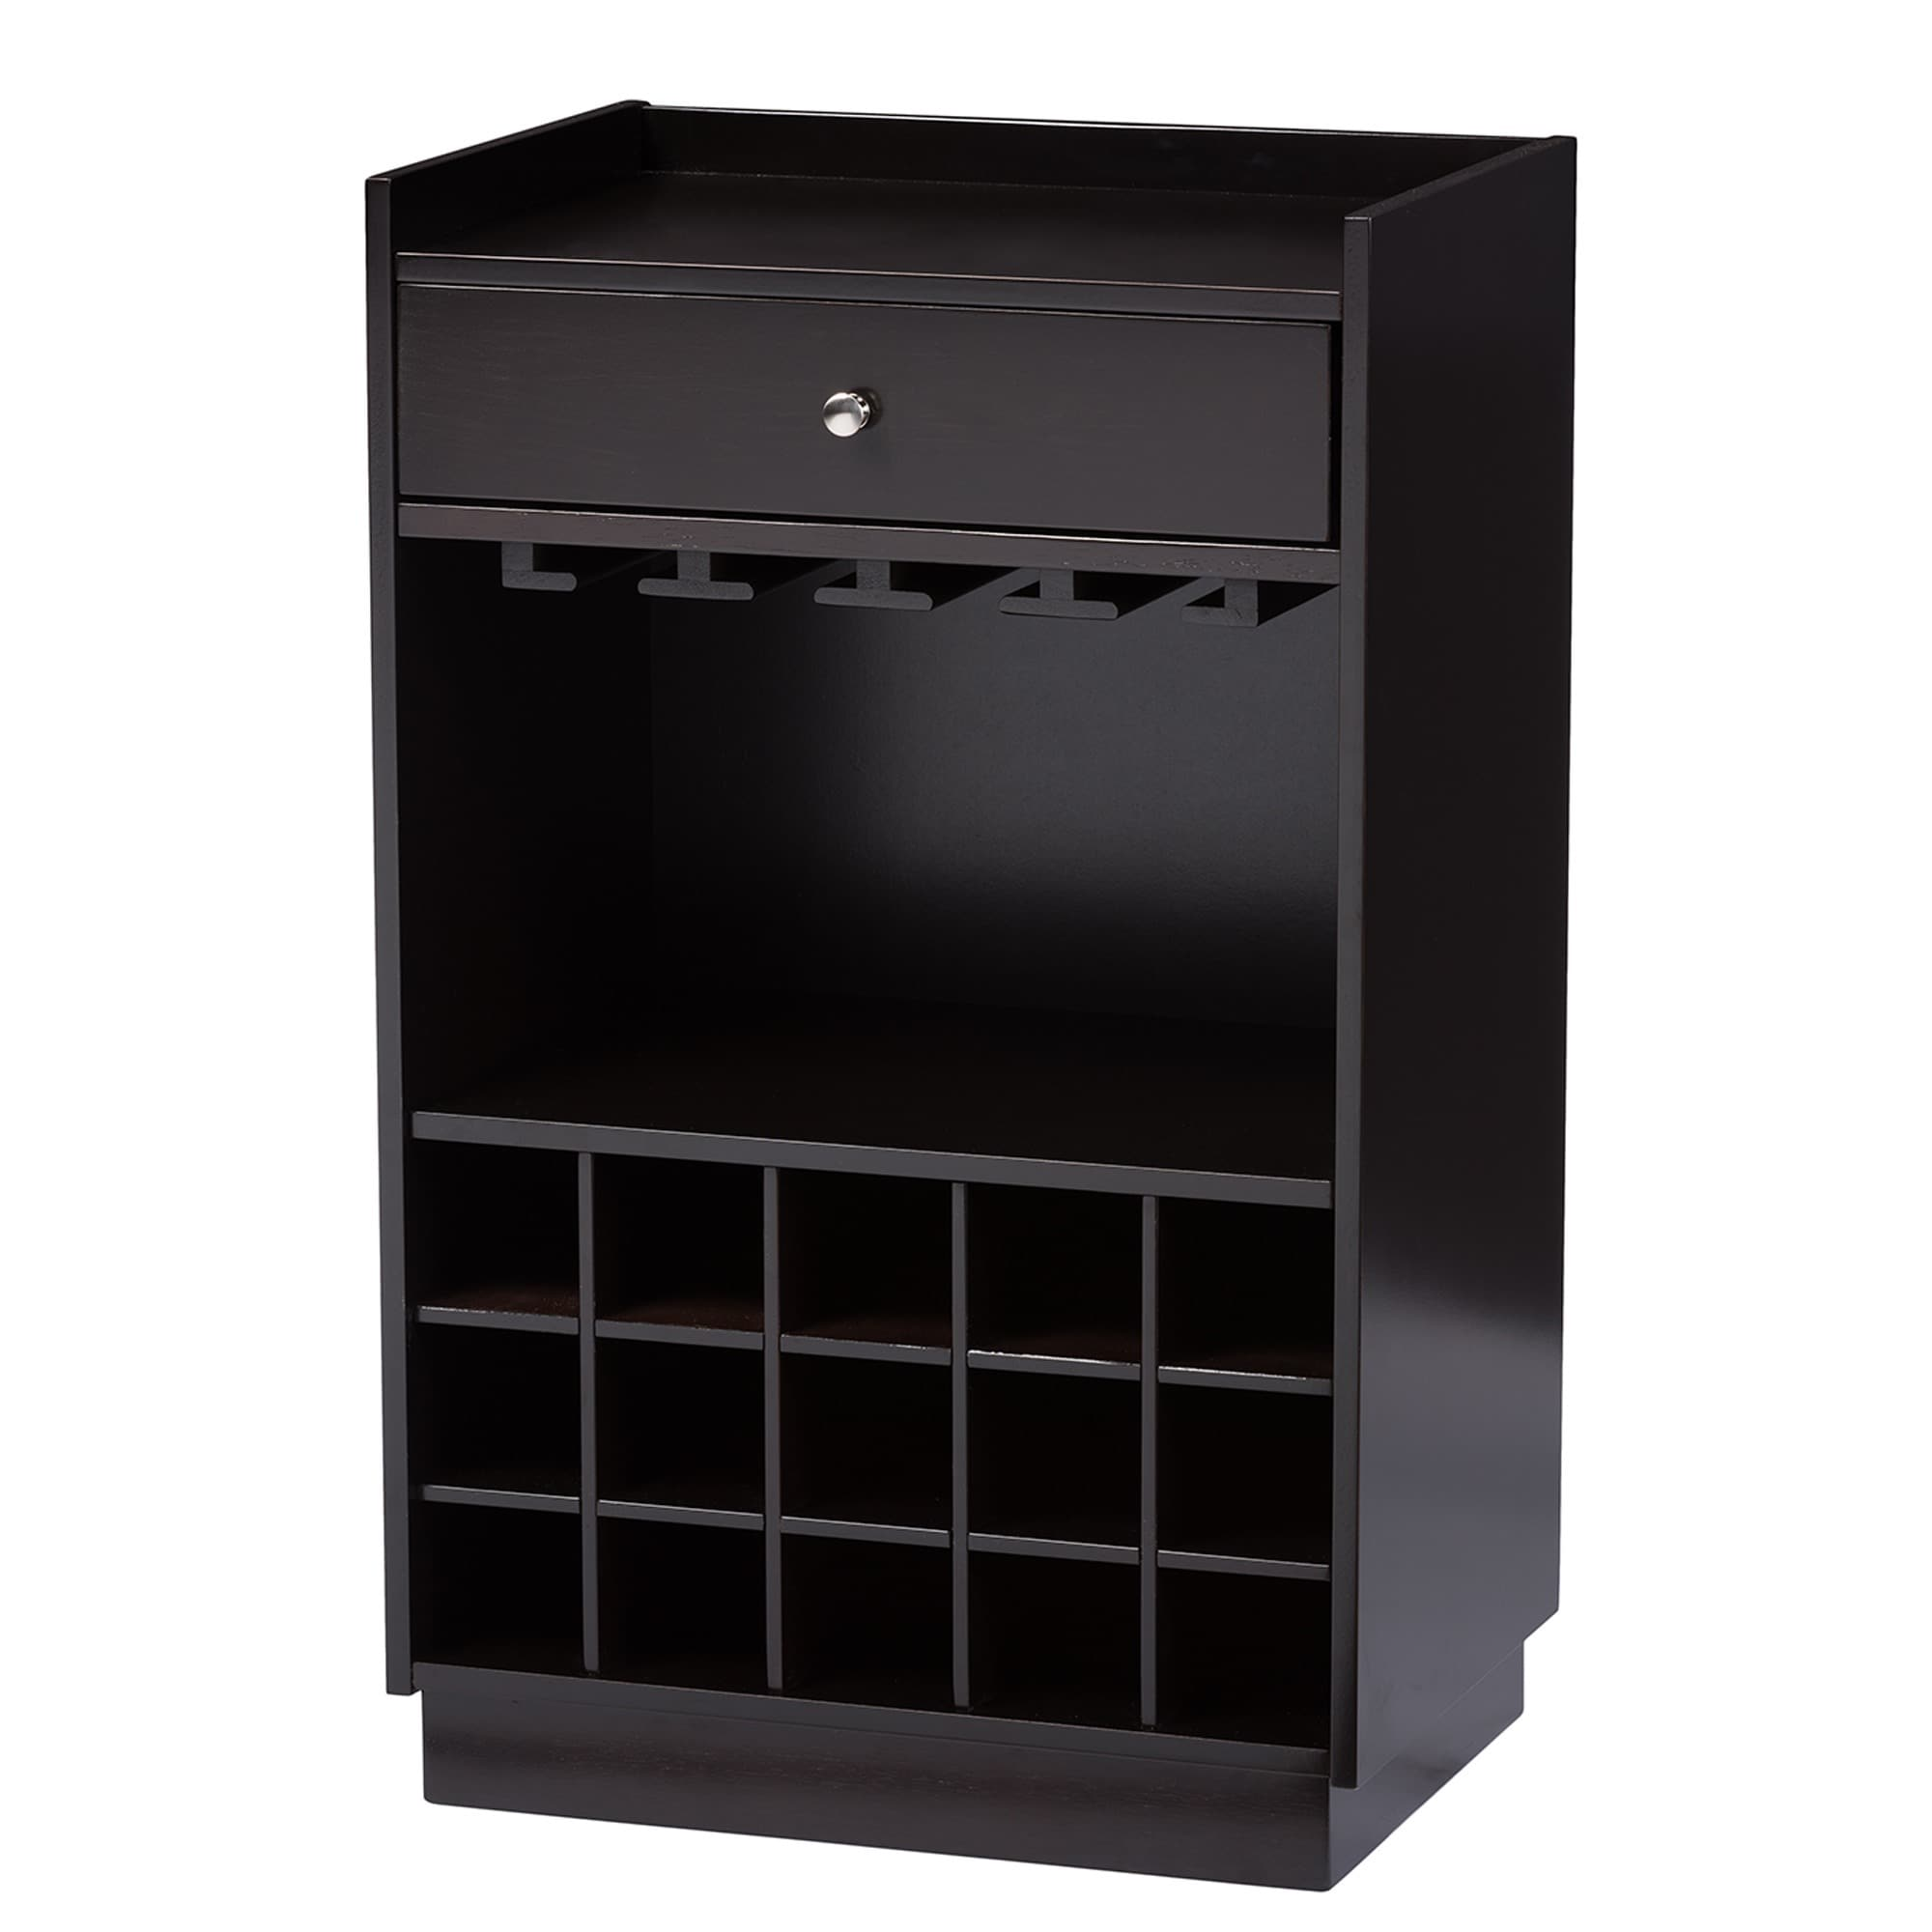 bottle wine liquor inexpensive designs custom with size holder small shelf dry glass standing bar full cabinet free cabinets alcohol console and rack of modular furniture